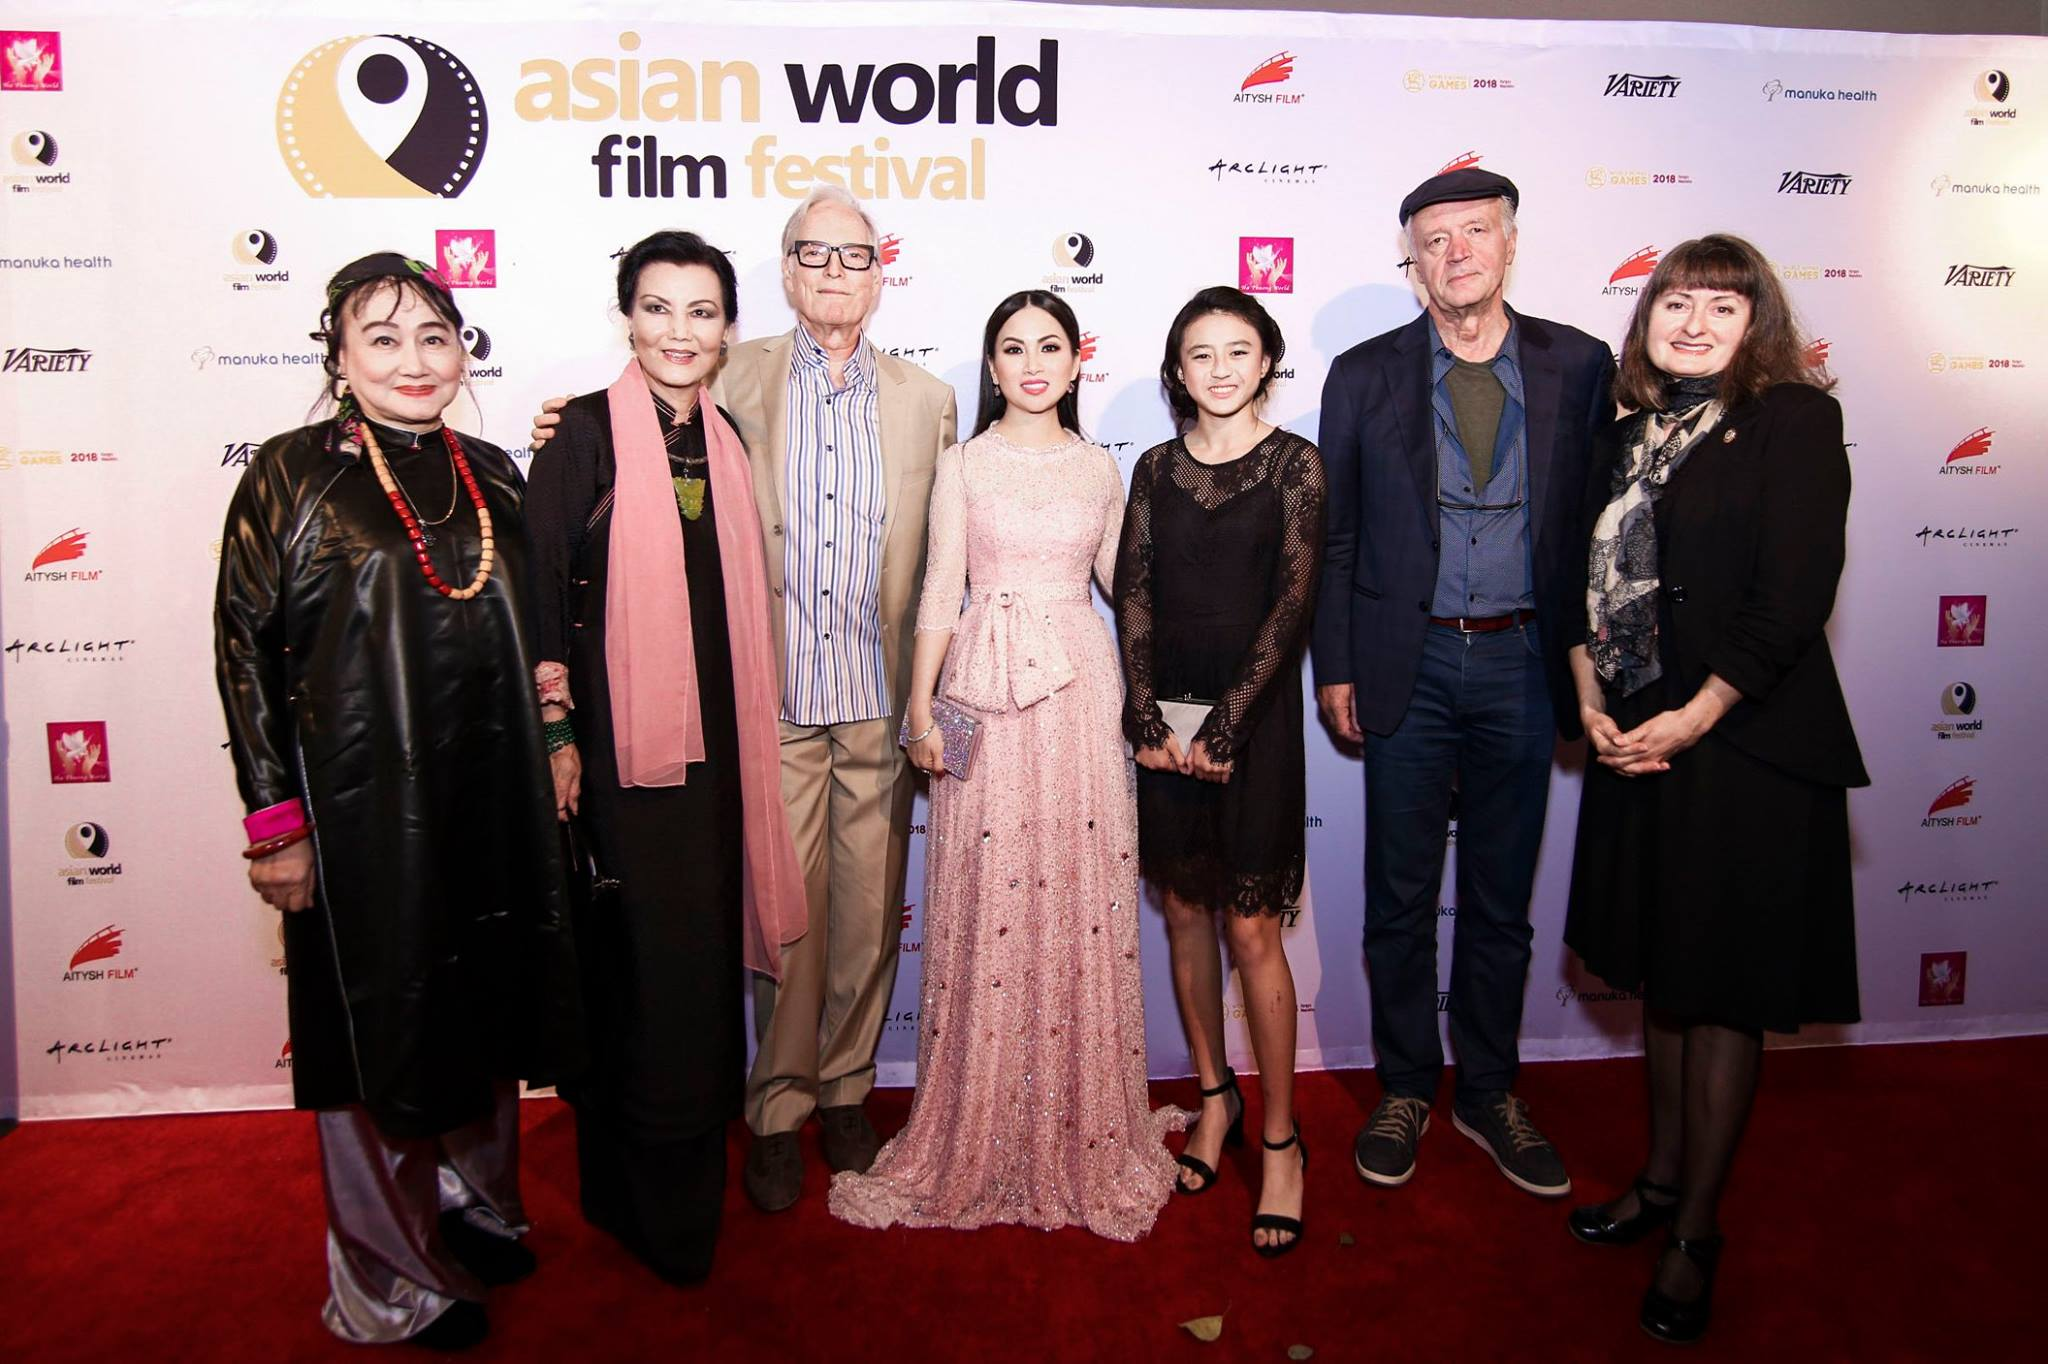 The 6th ANNUAL ASIAN WORLD FILM FESTIVAL (AWFF)